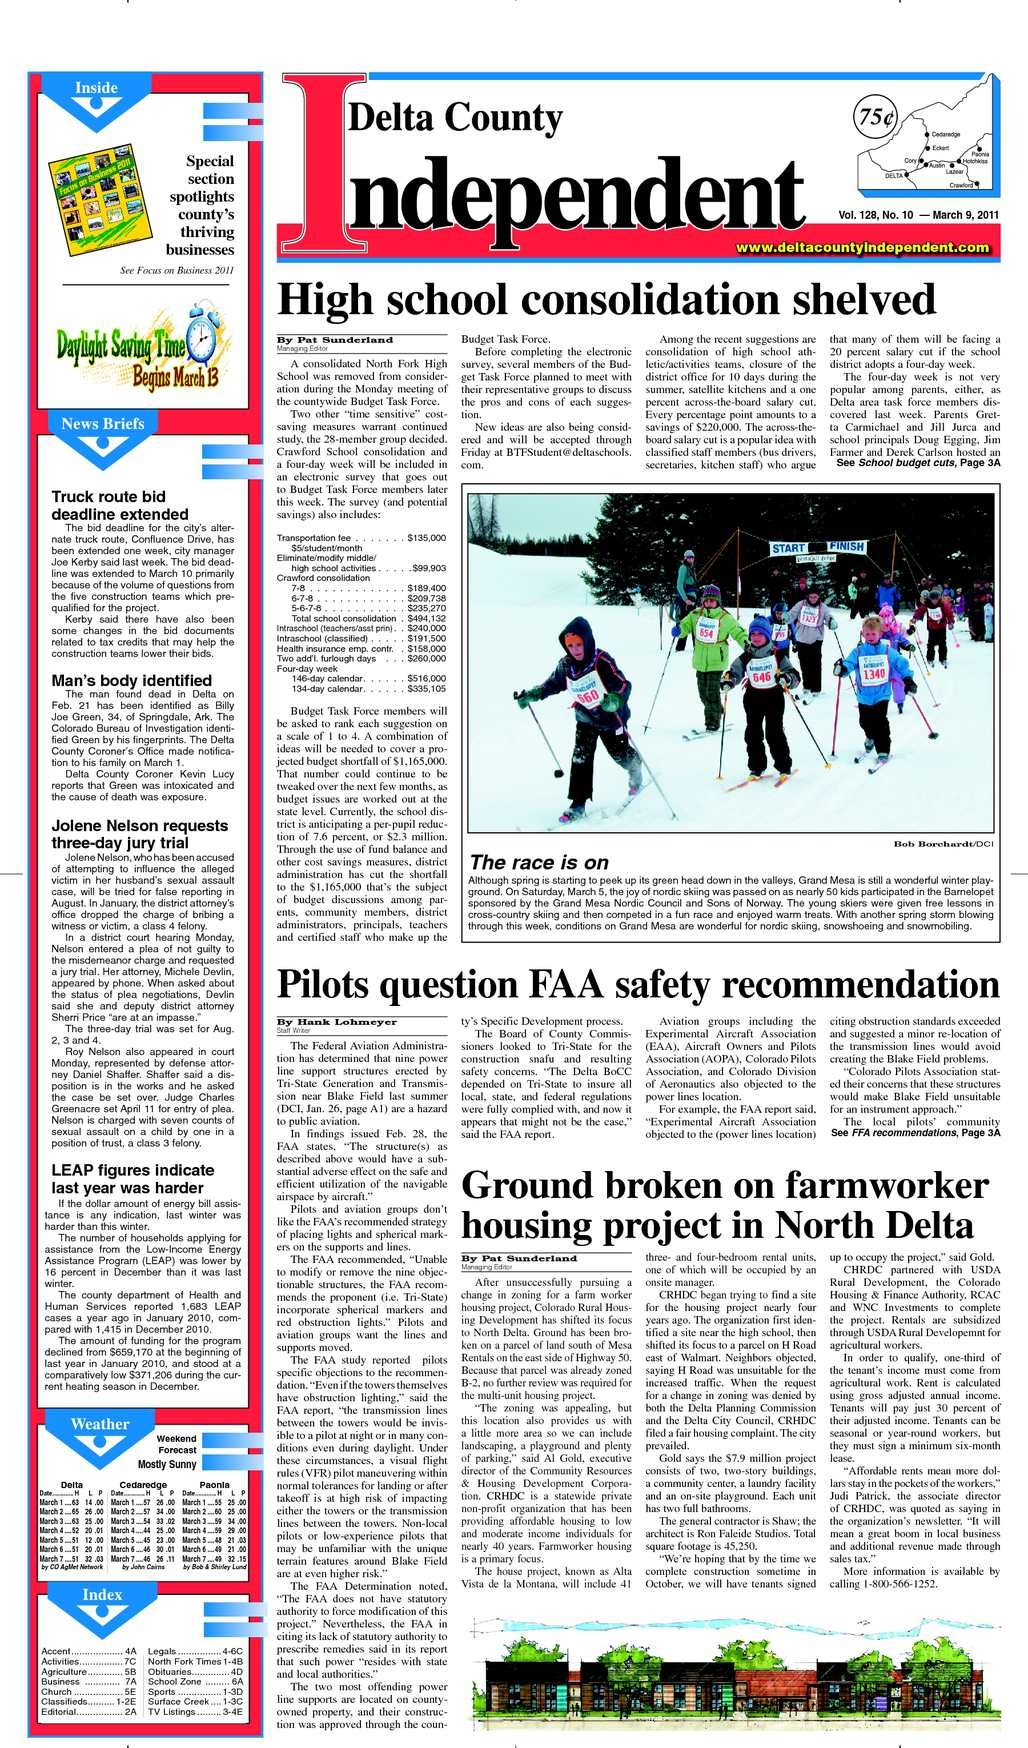 Calaméo - Delta County Independent, Issue 10, March 9, 2011